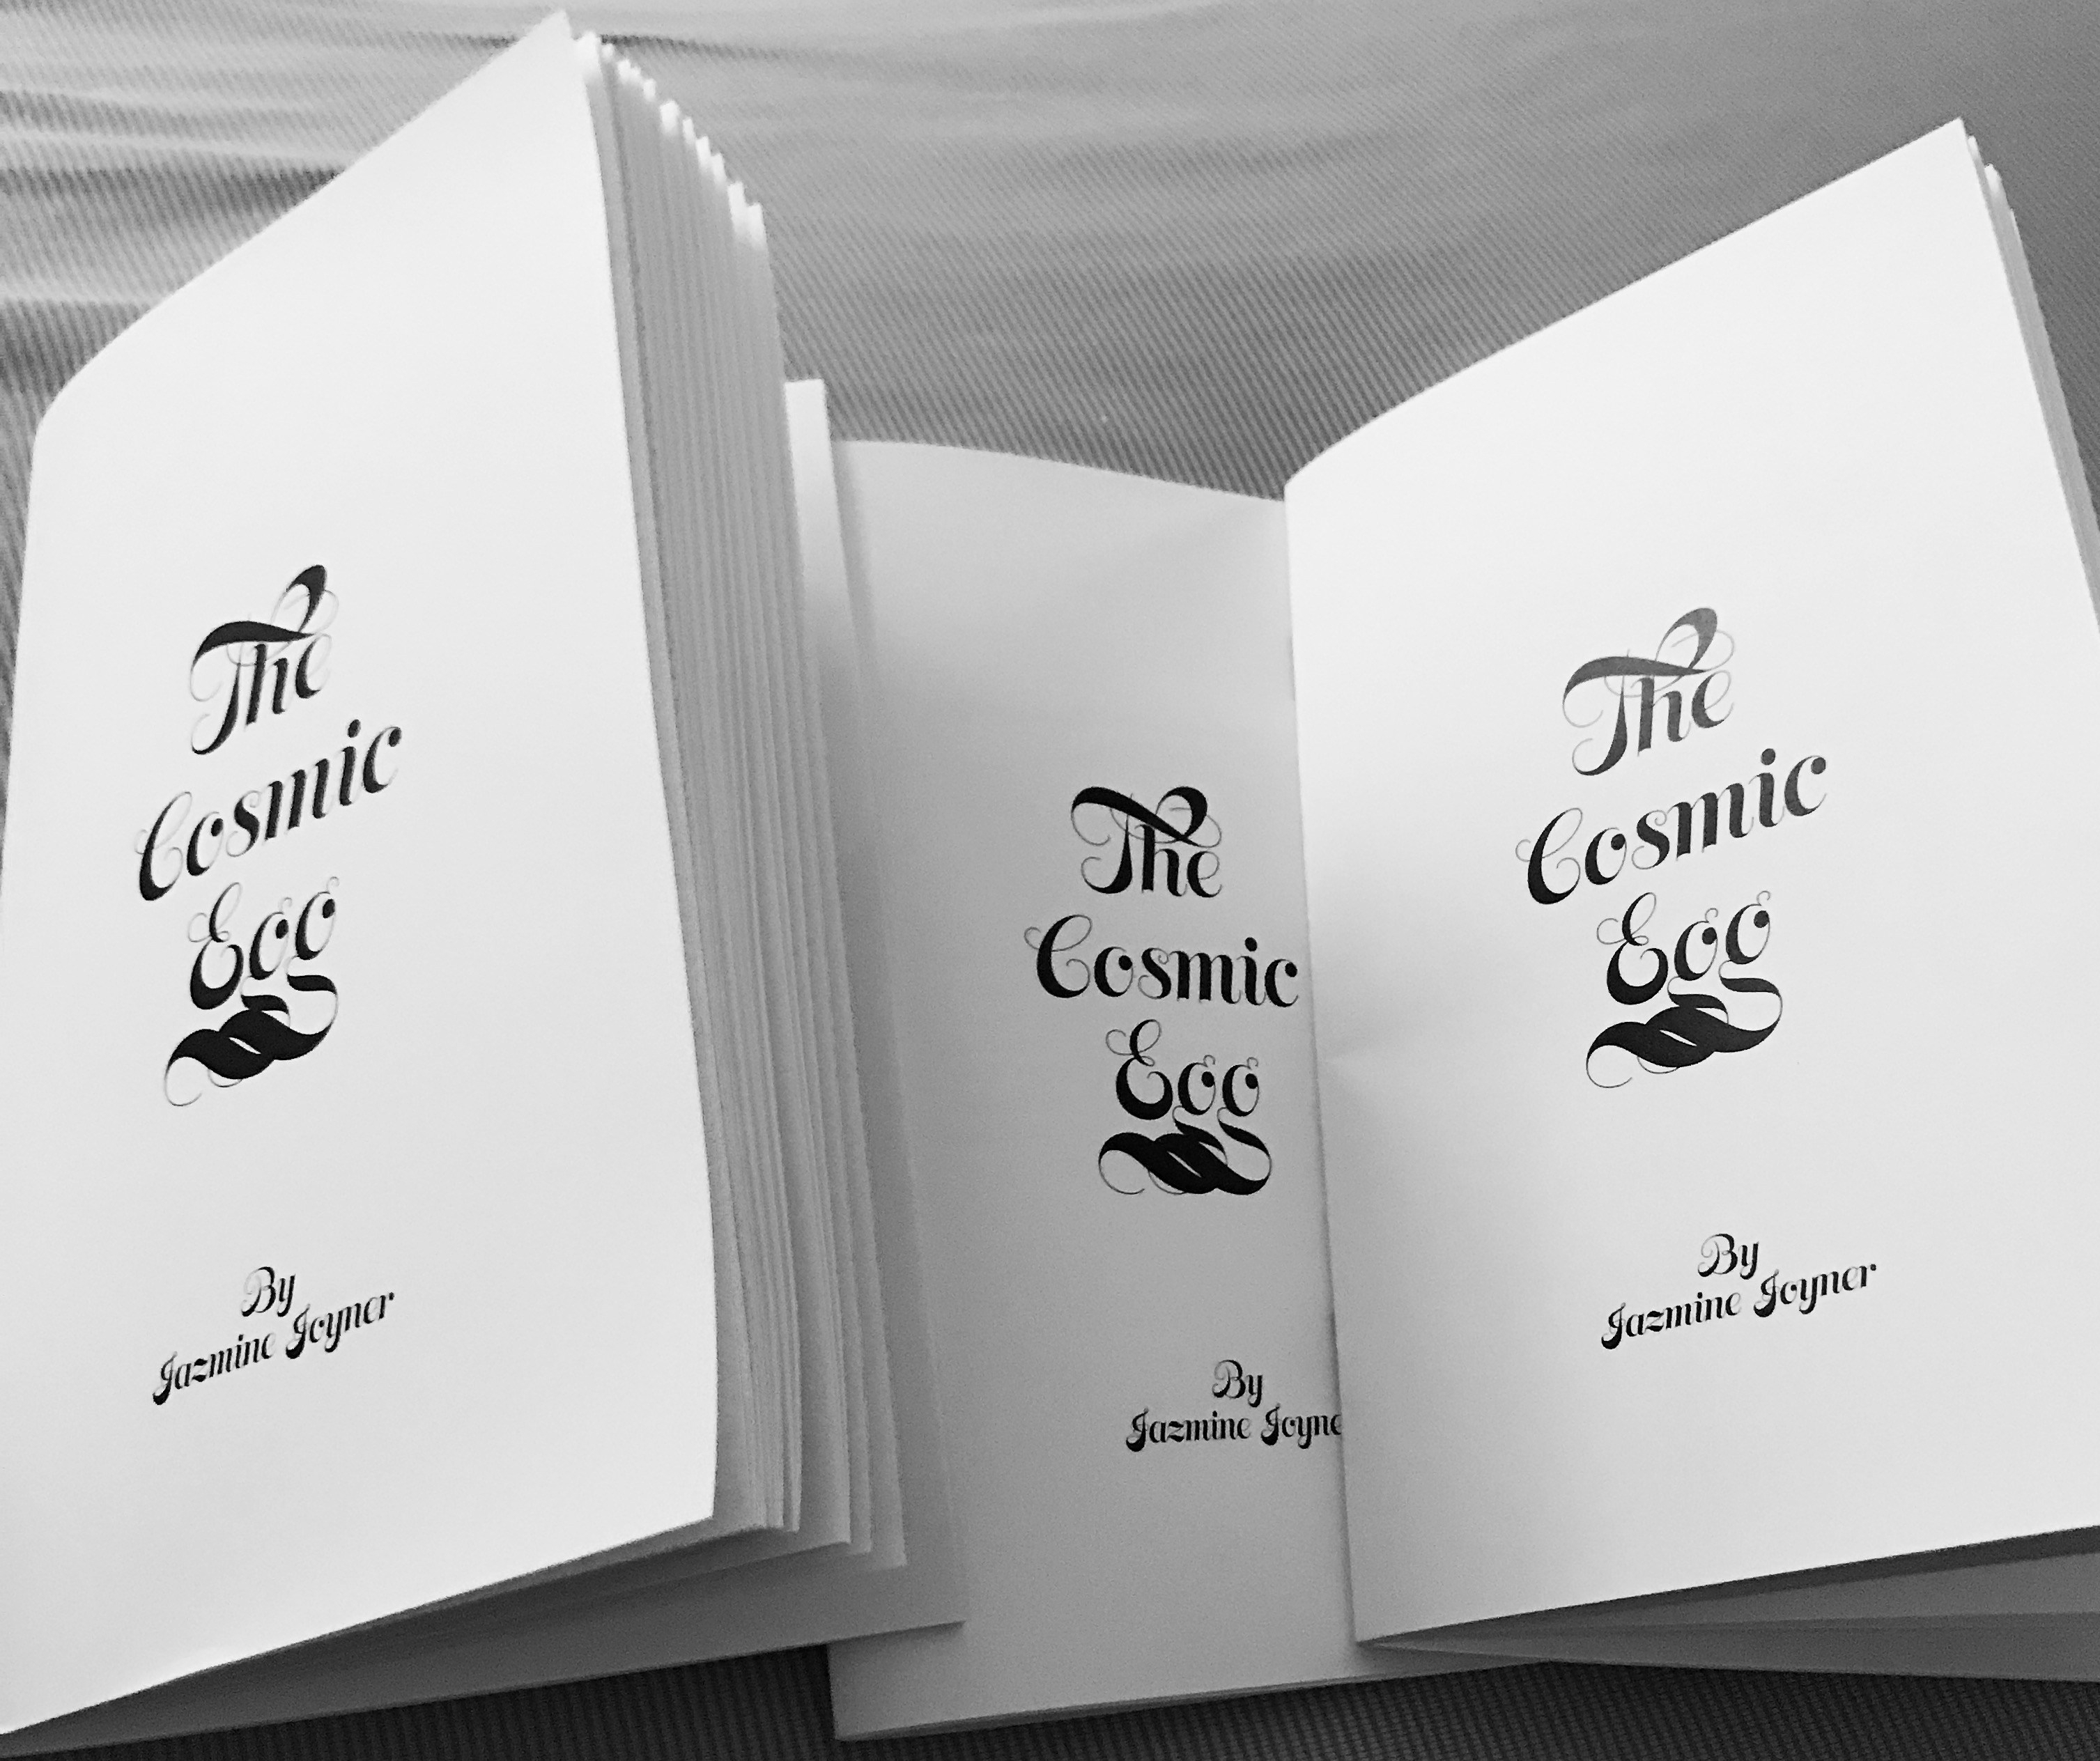 The Cosmic Egg Zine.